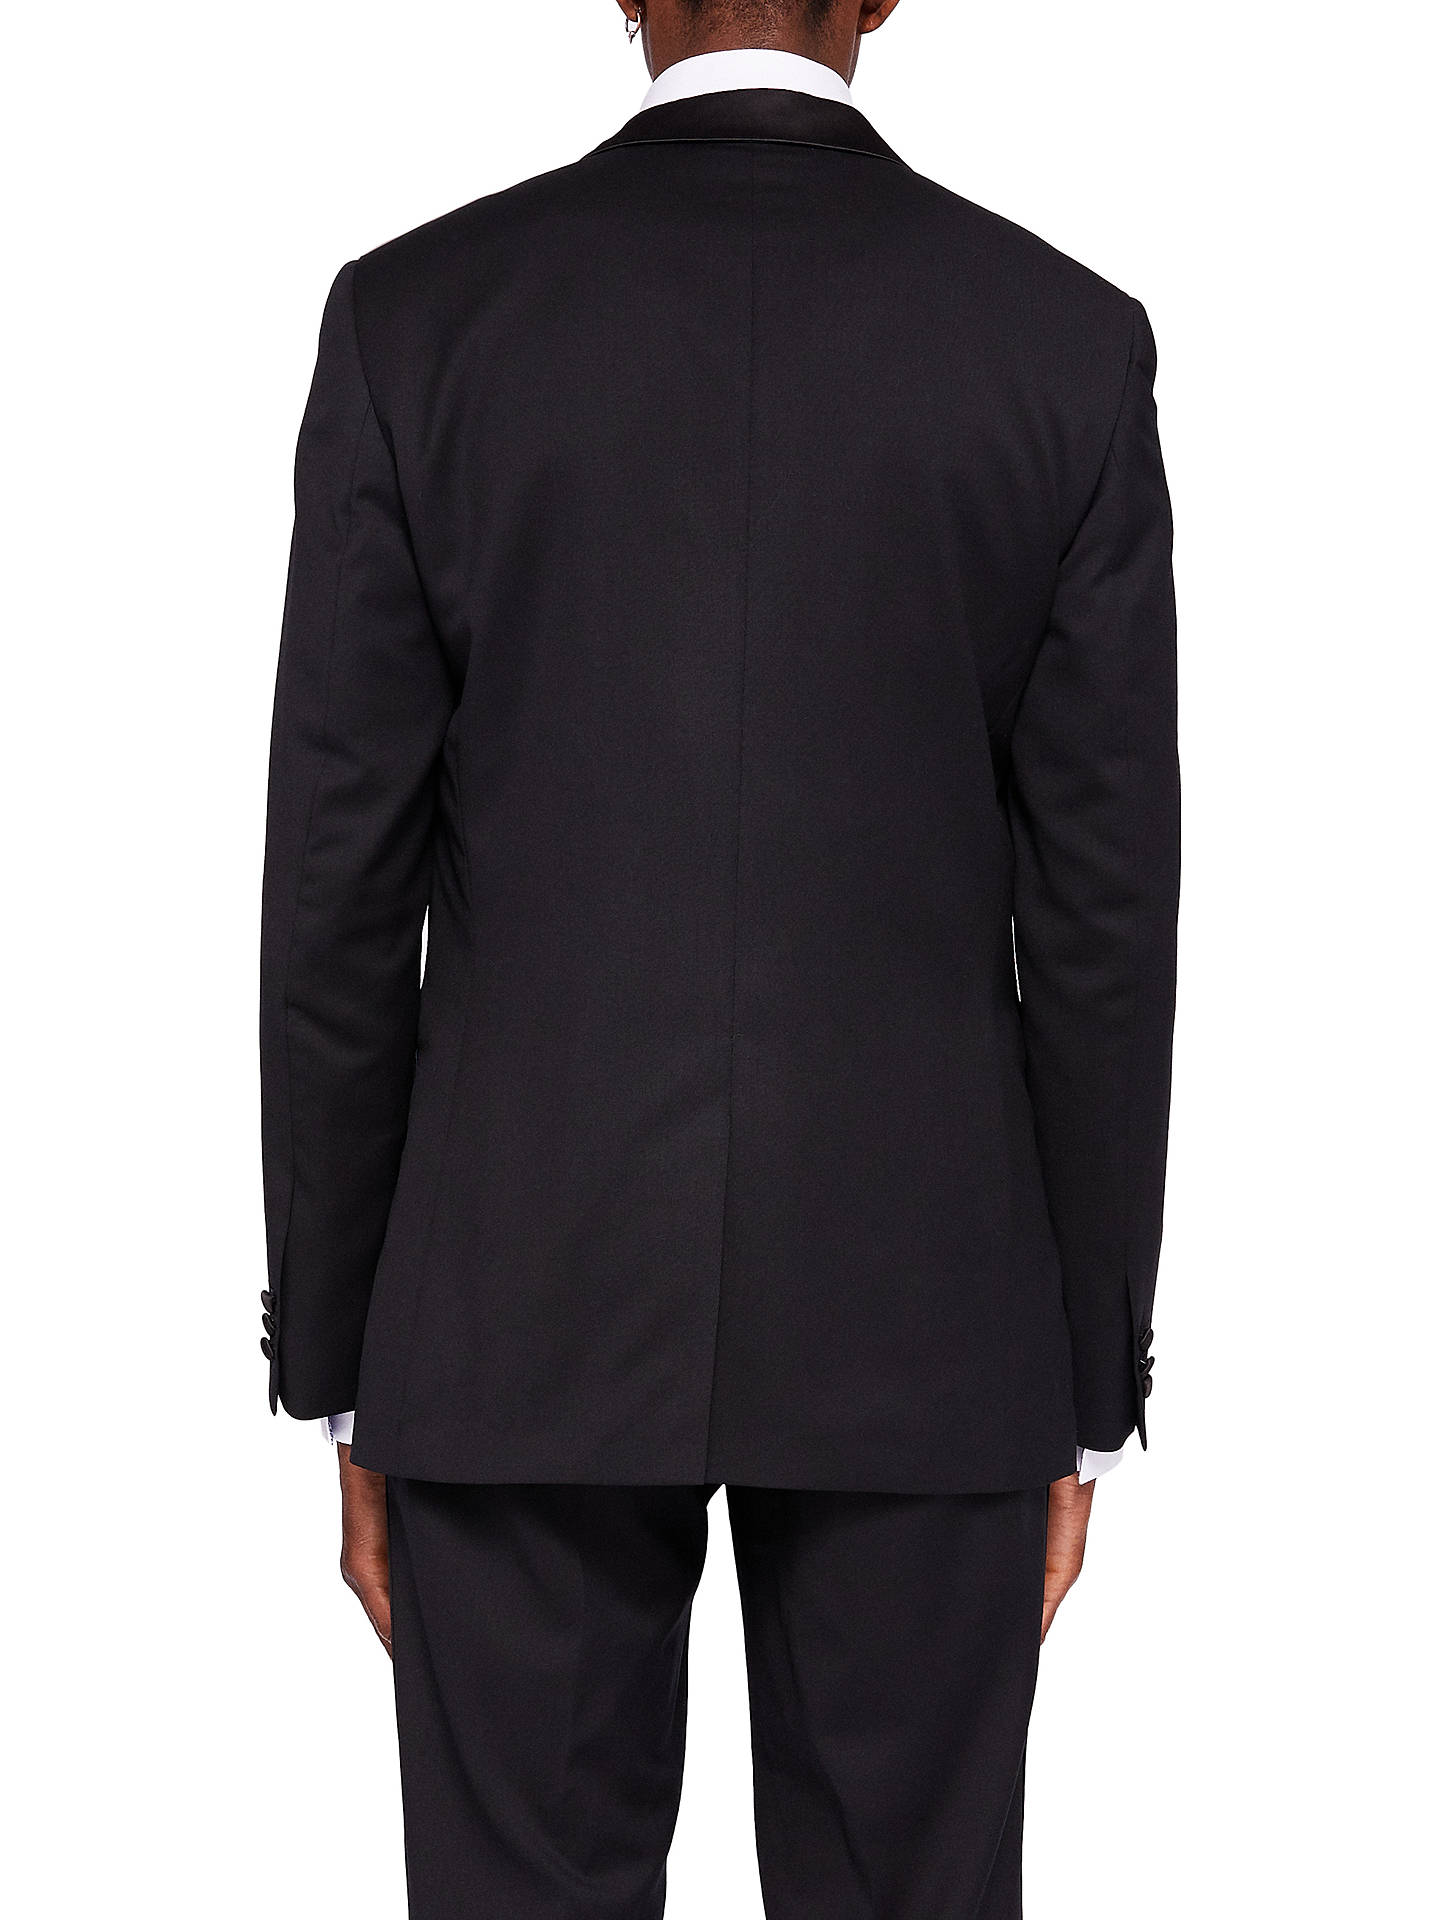 BuyTed Baker Emmalaj Night Owl Dress Suit Jacket, Black, 38S Online at johnlewis.com